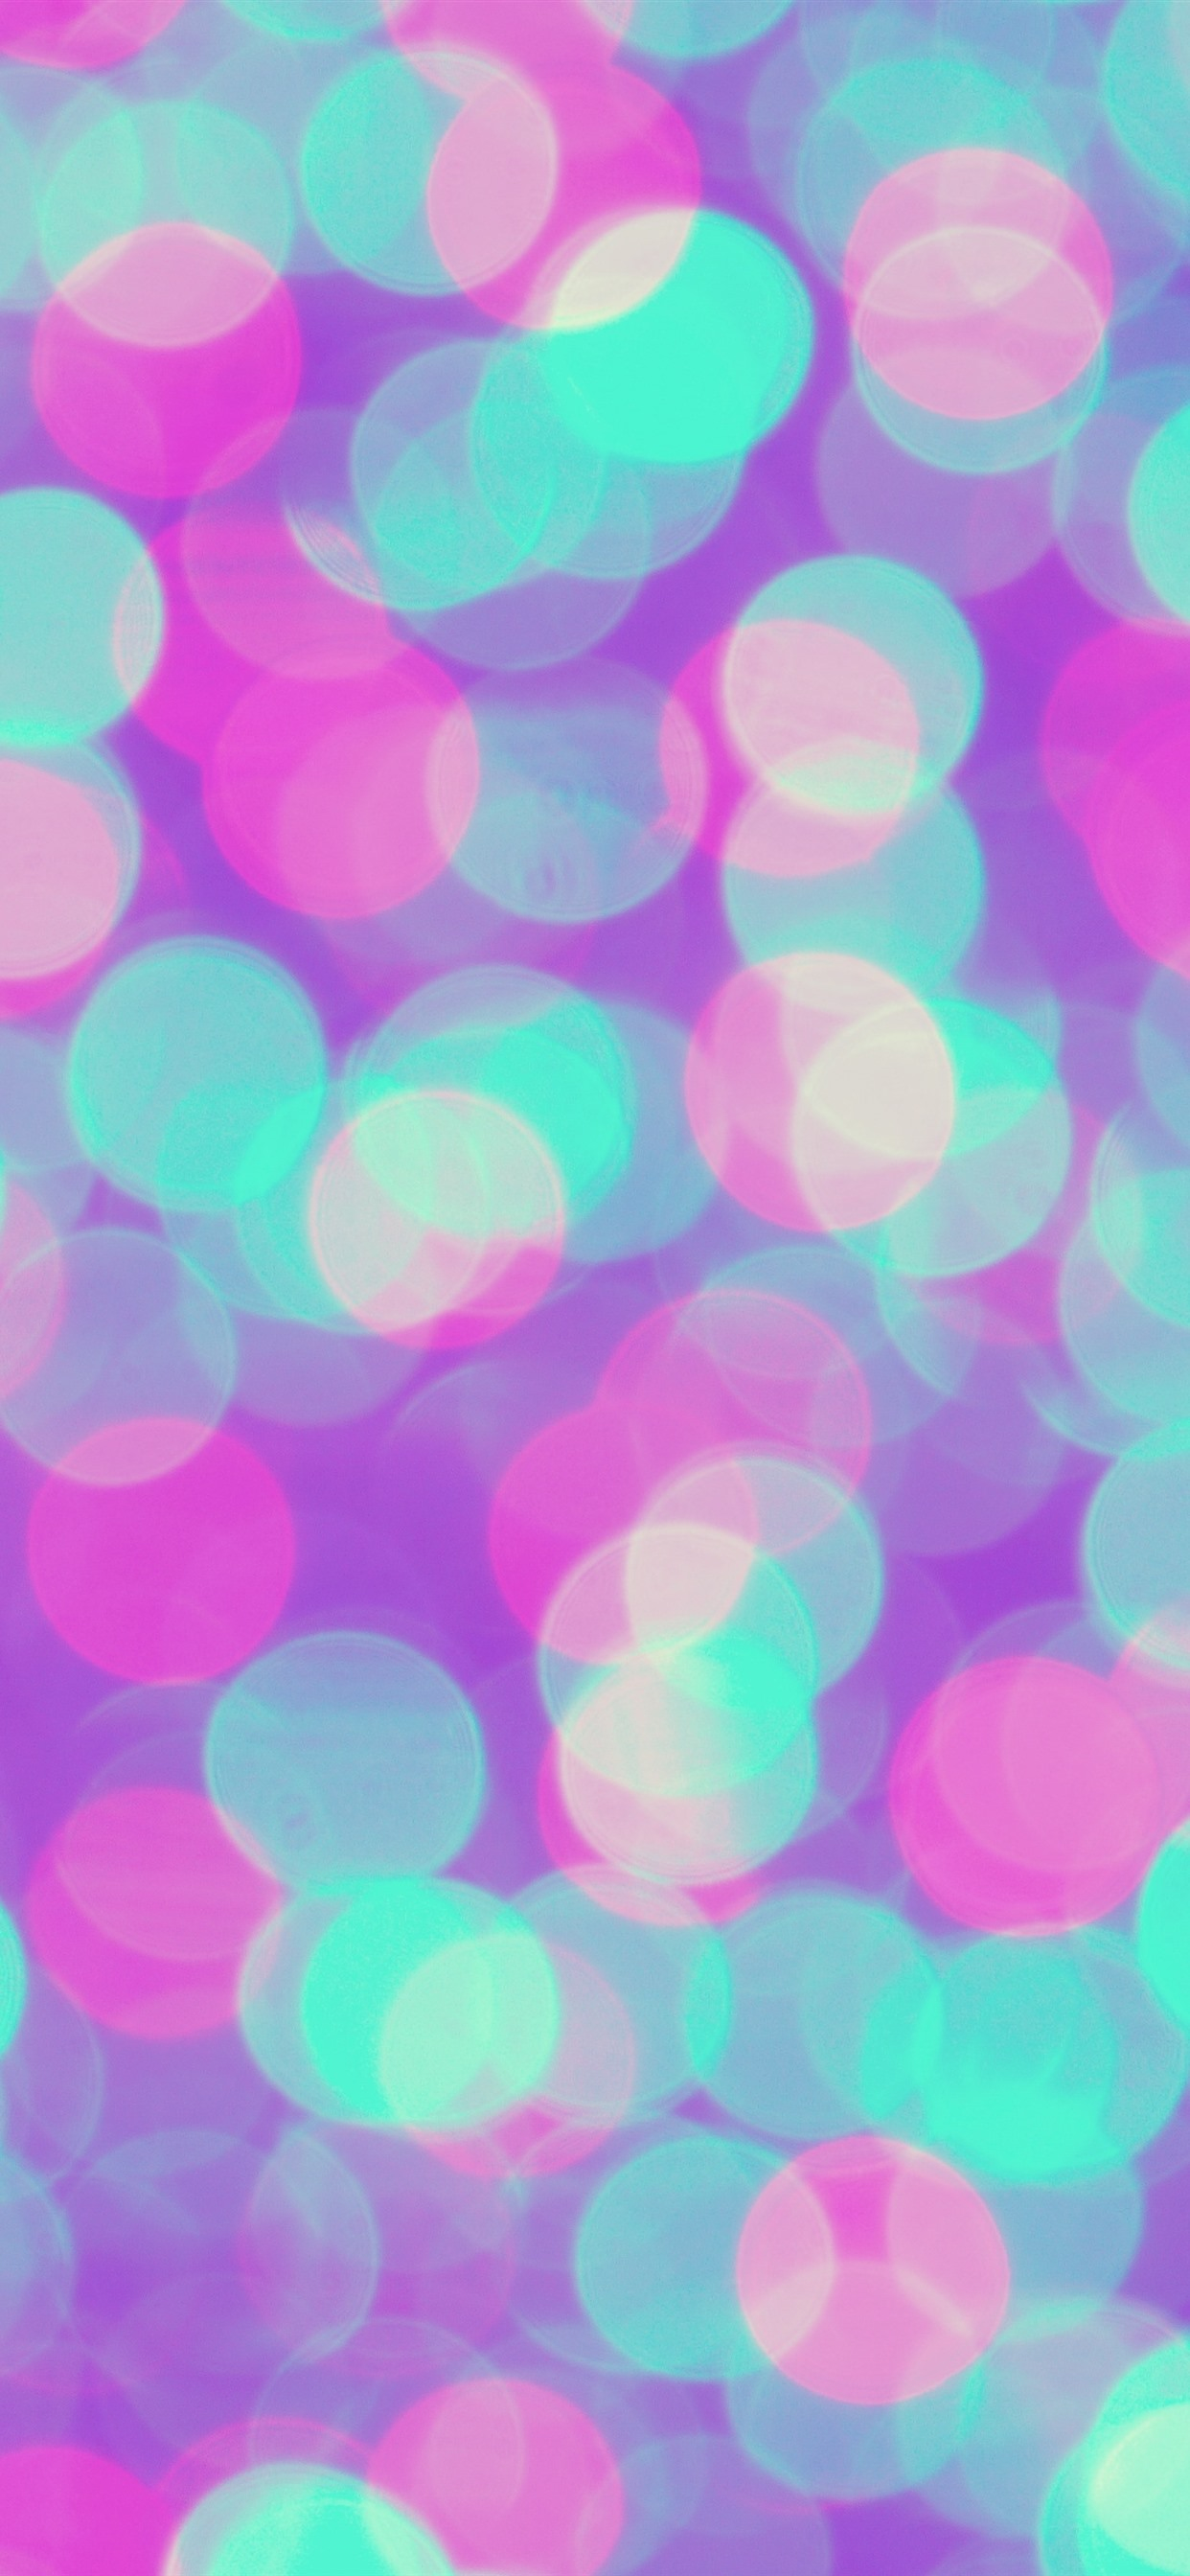 Colorful Light Circles Abstract Background 1242x2688 Iphone